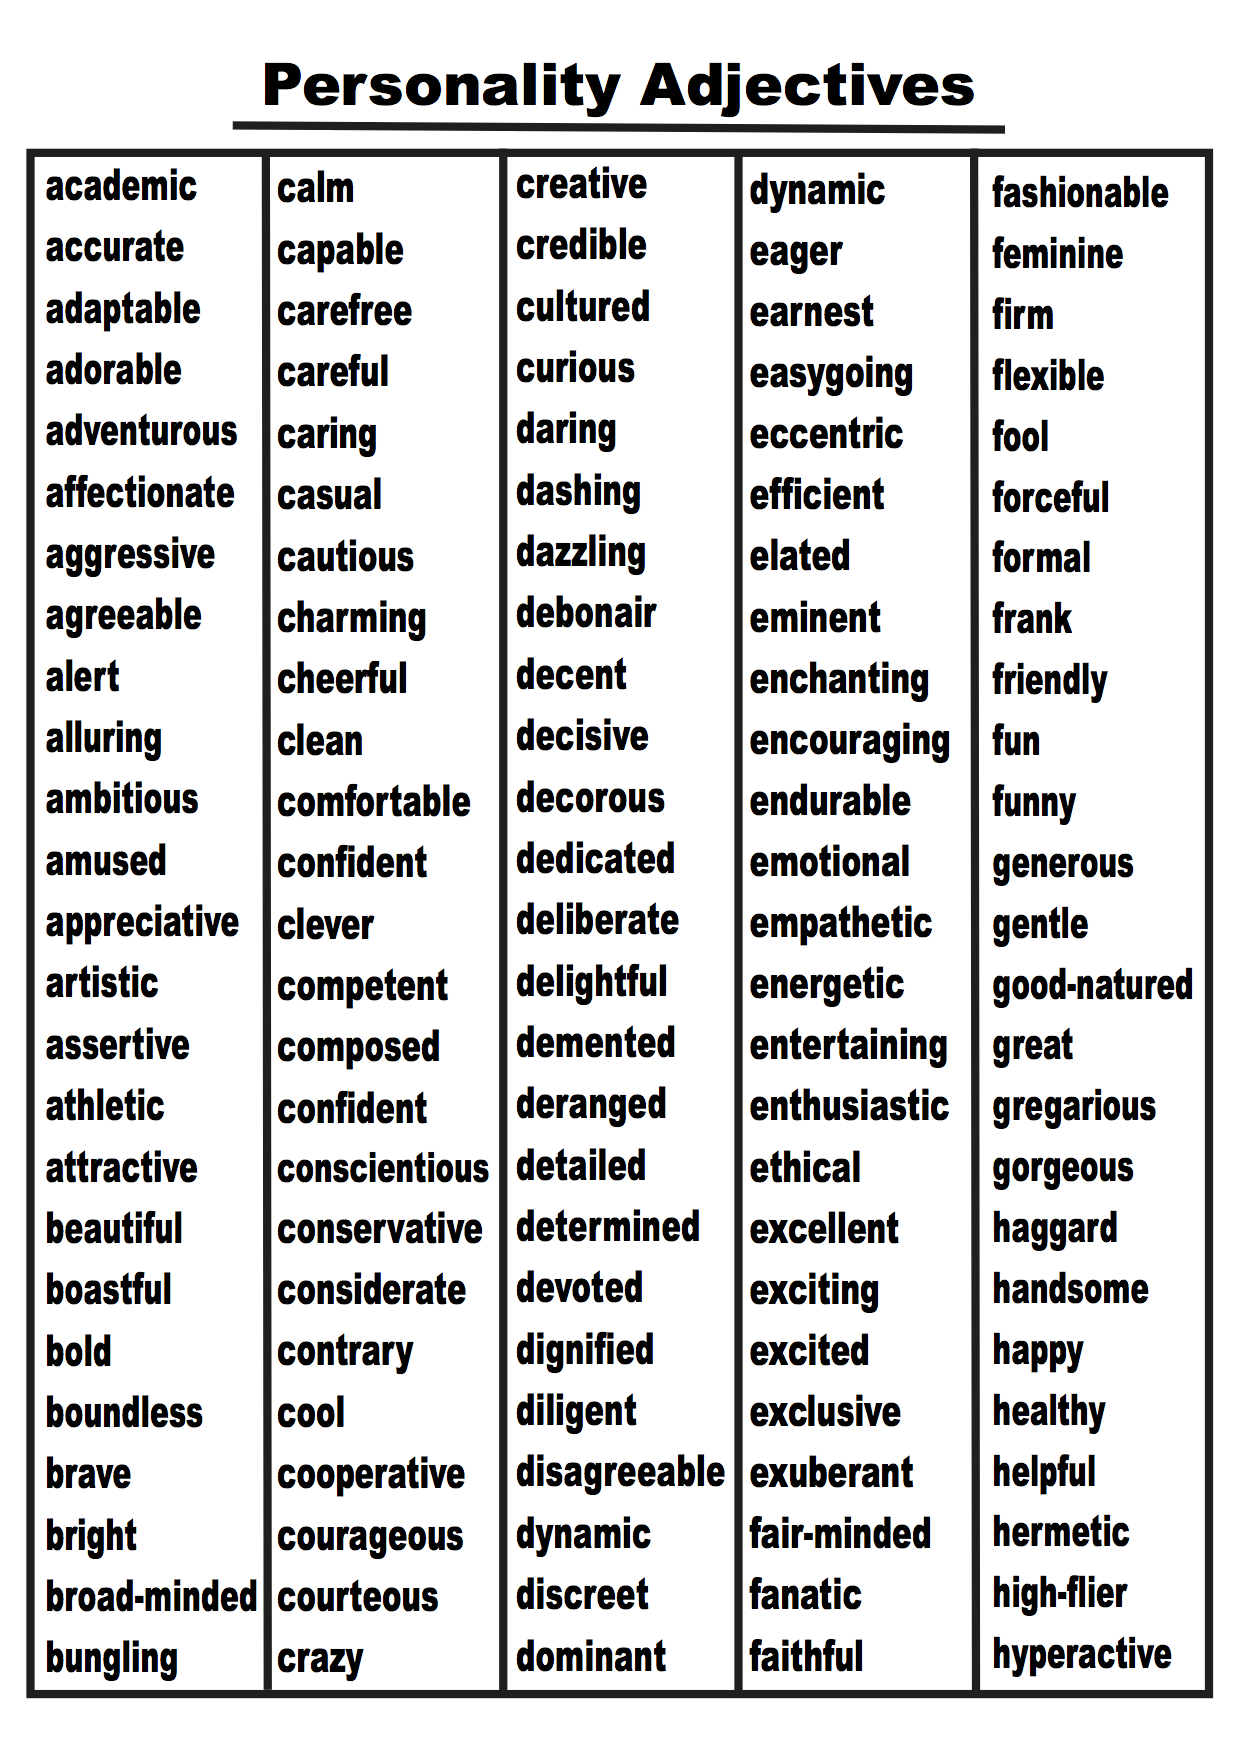 List of Adjective Words